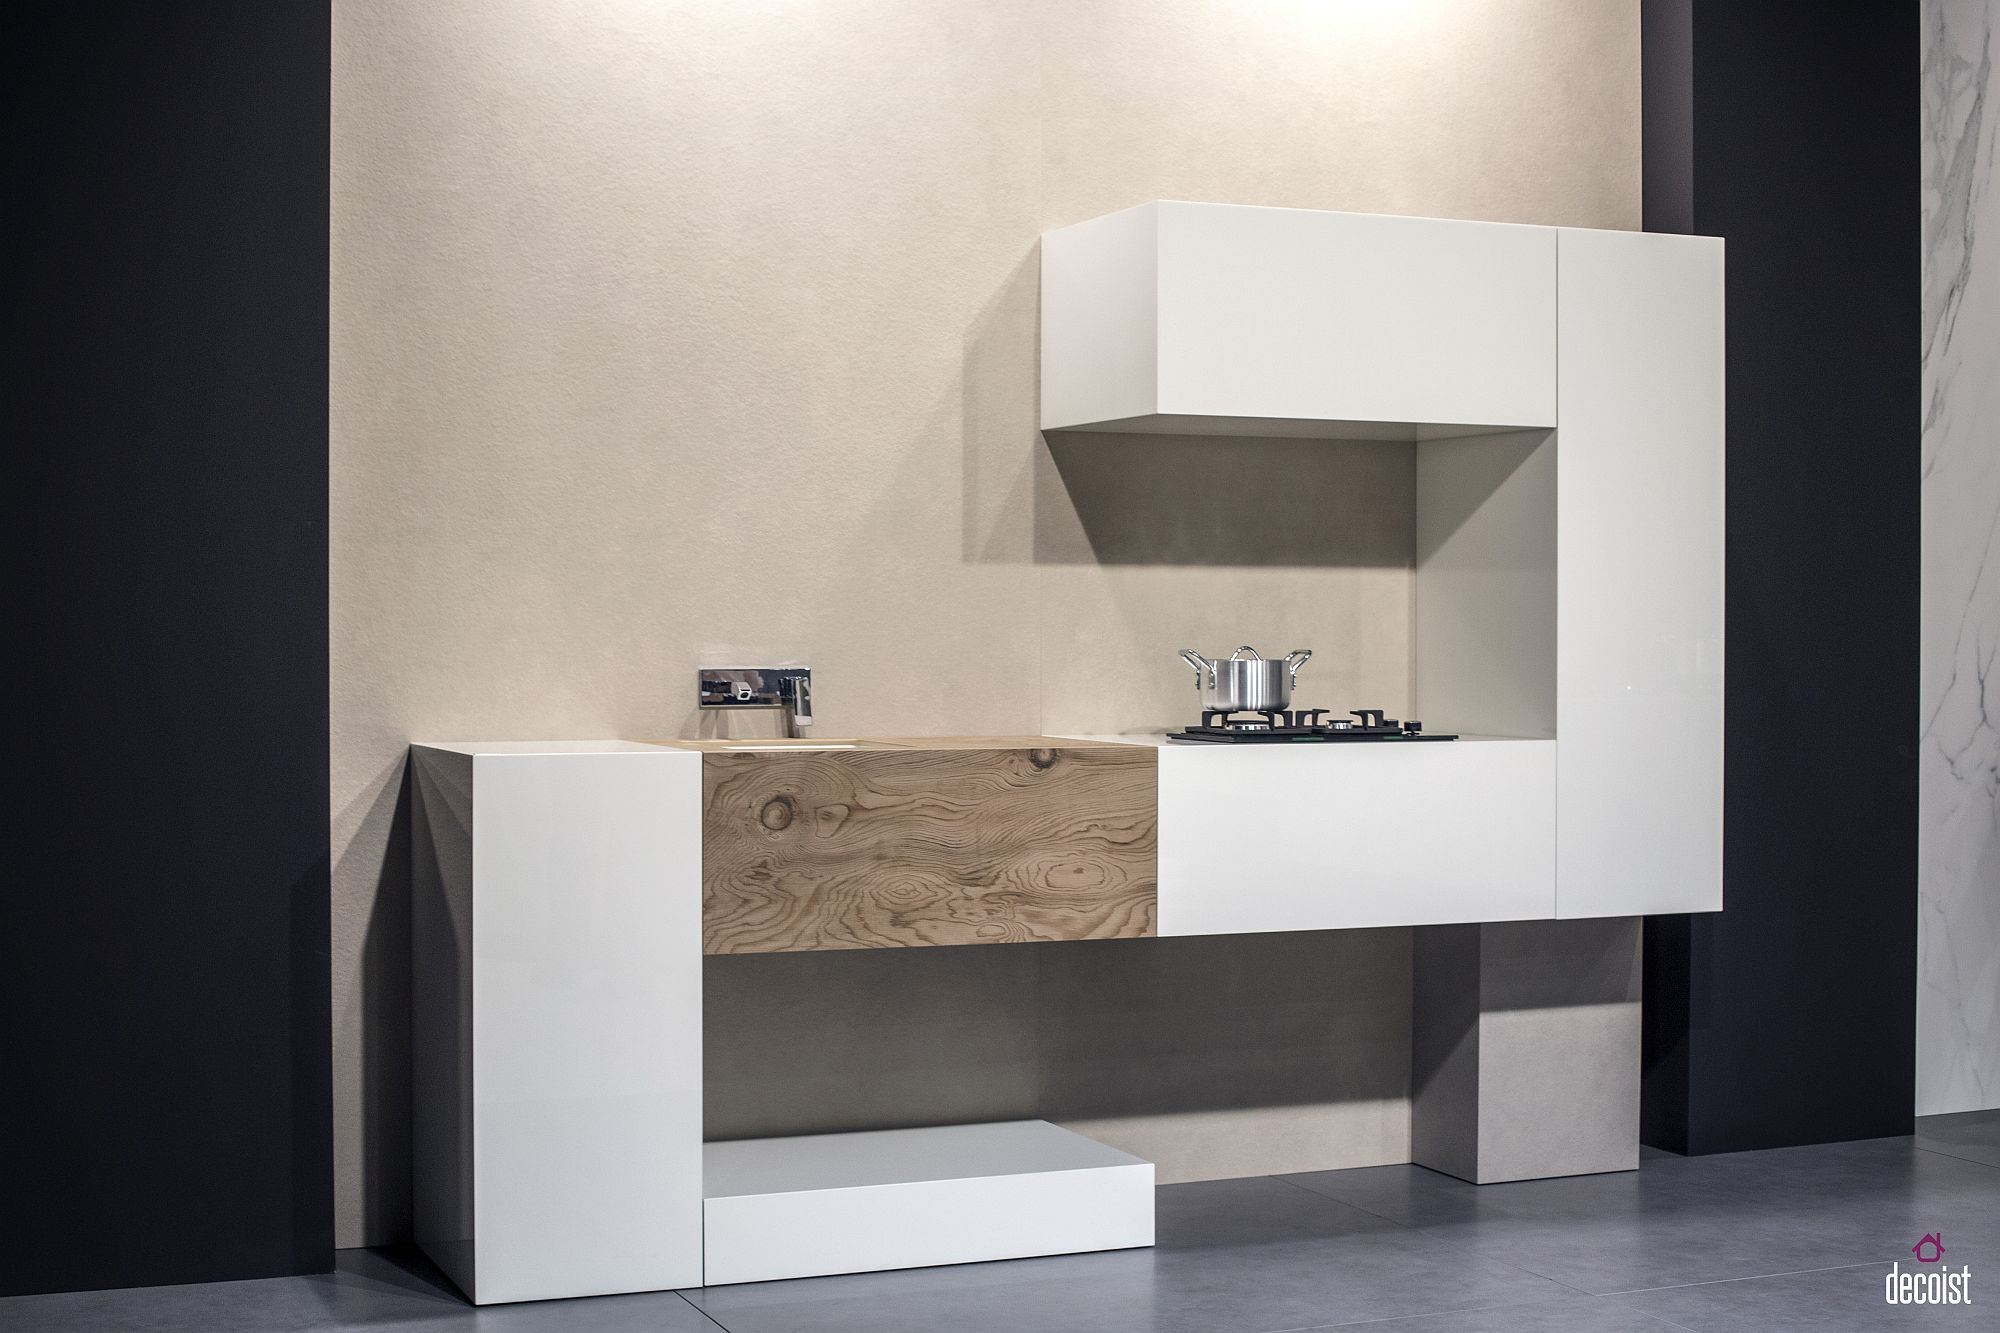 Inventive and minimal one-wall kitchen design feels like an abstract work of art